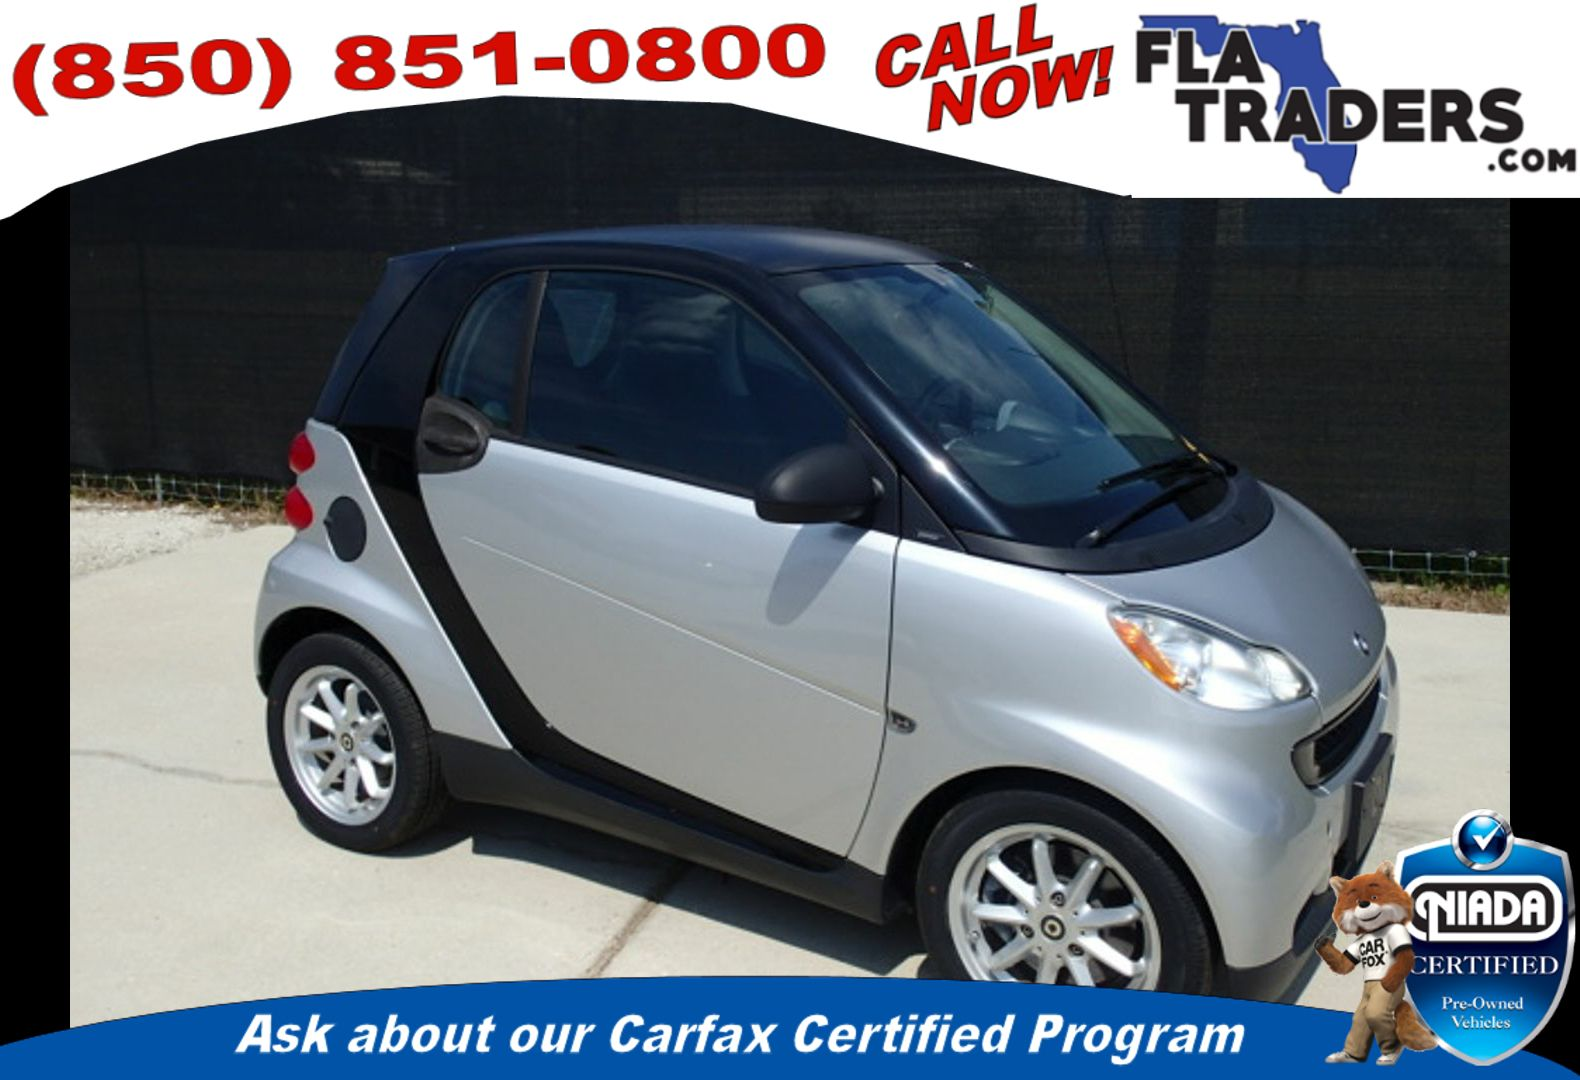 2009 SMART FORTWO - Florida Traders Used Cars in Panama City FL ...